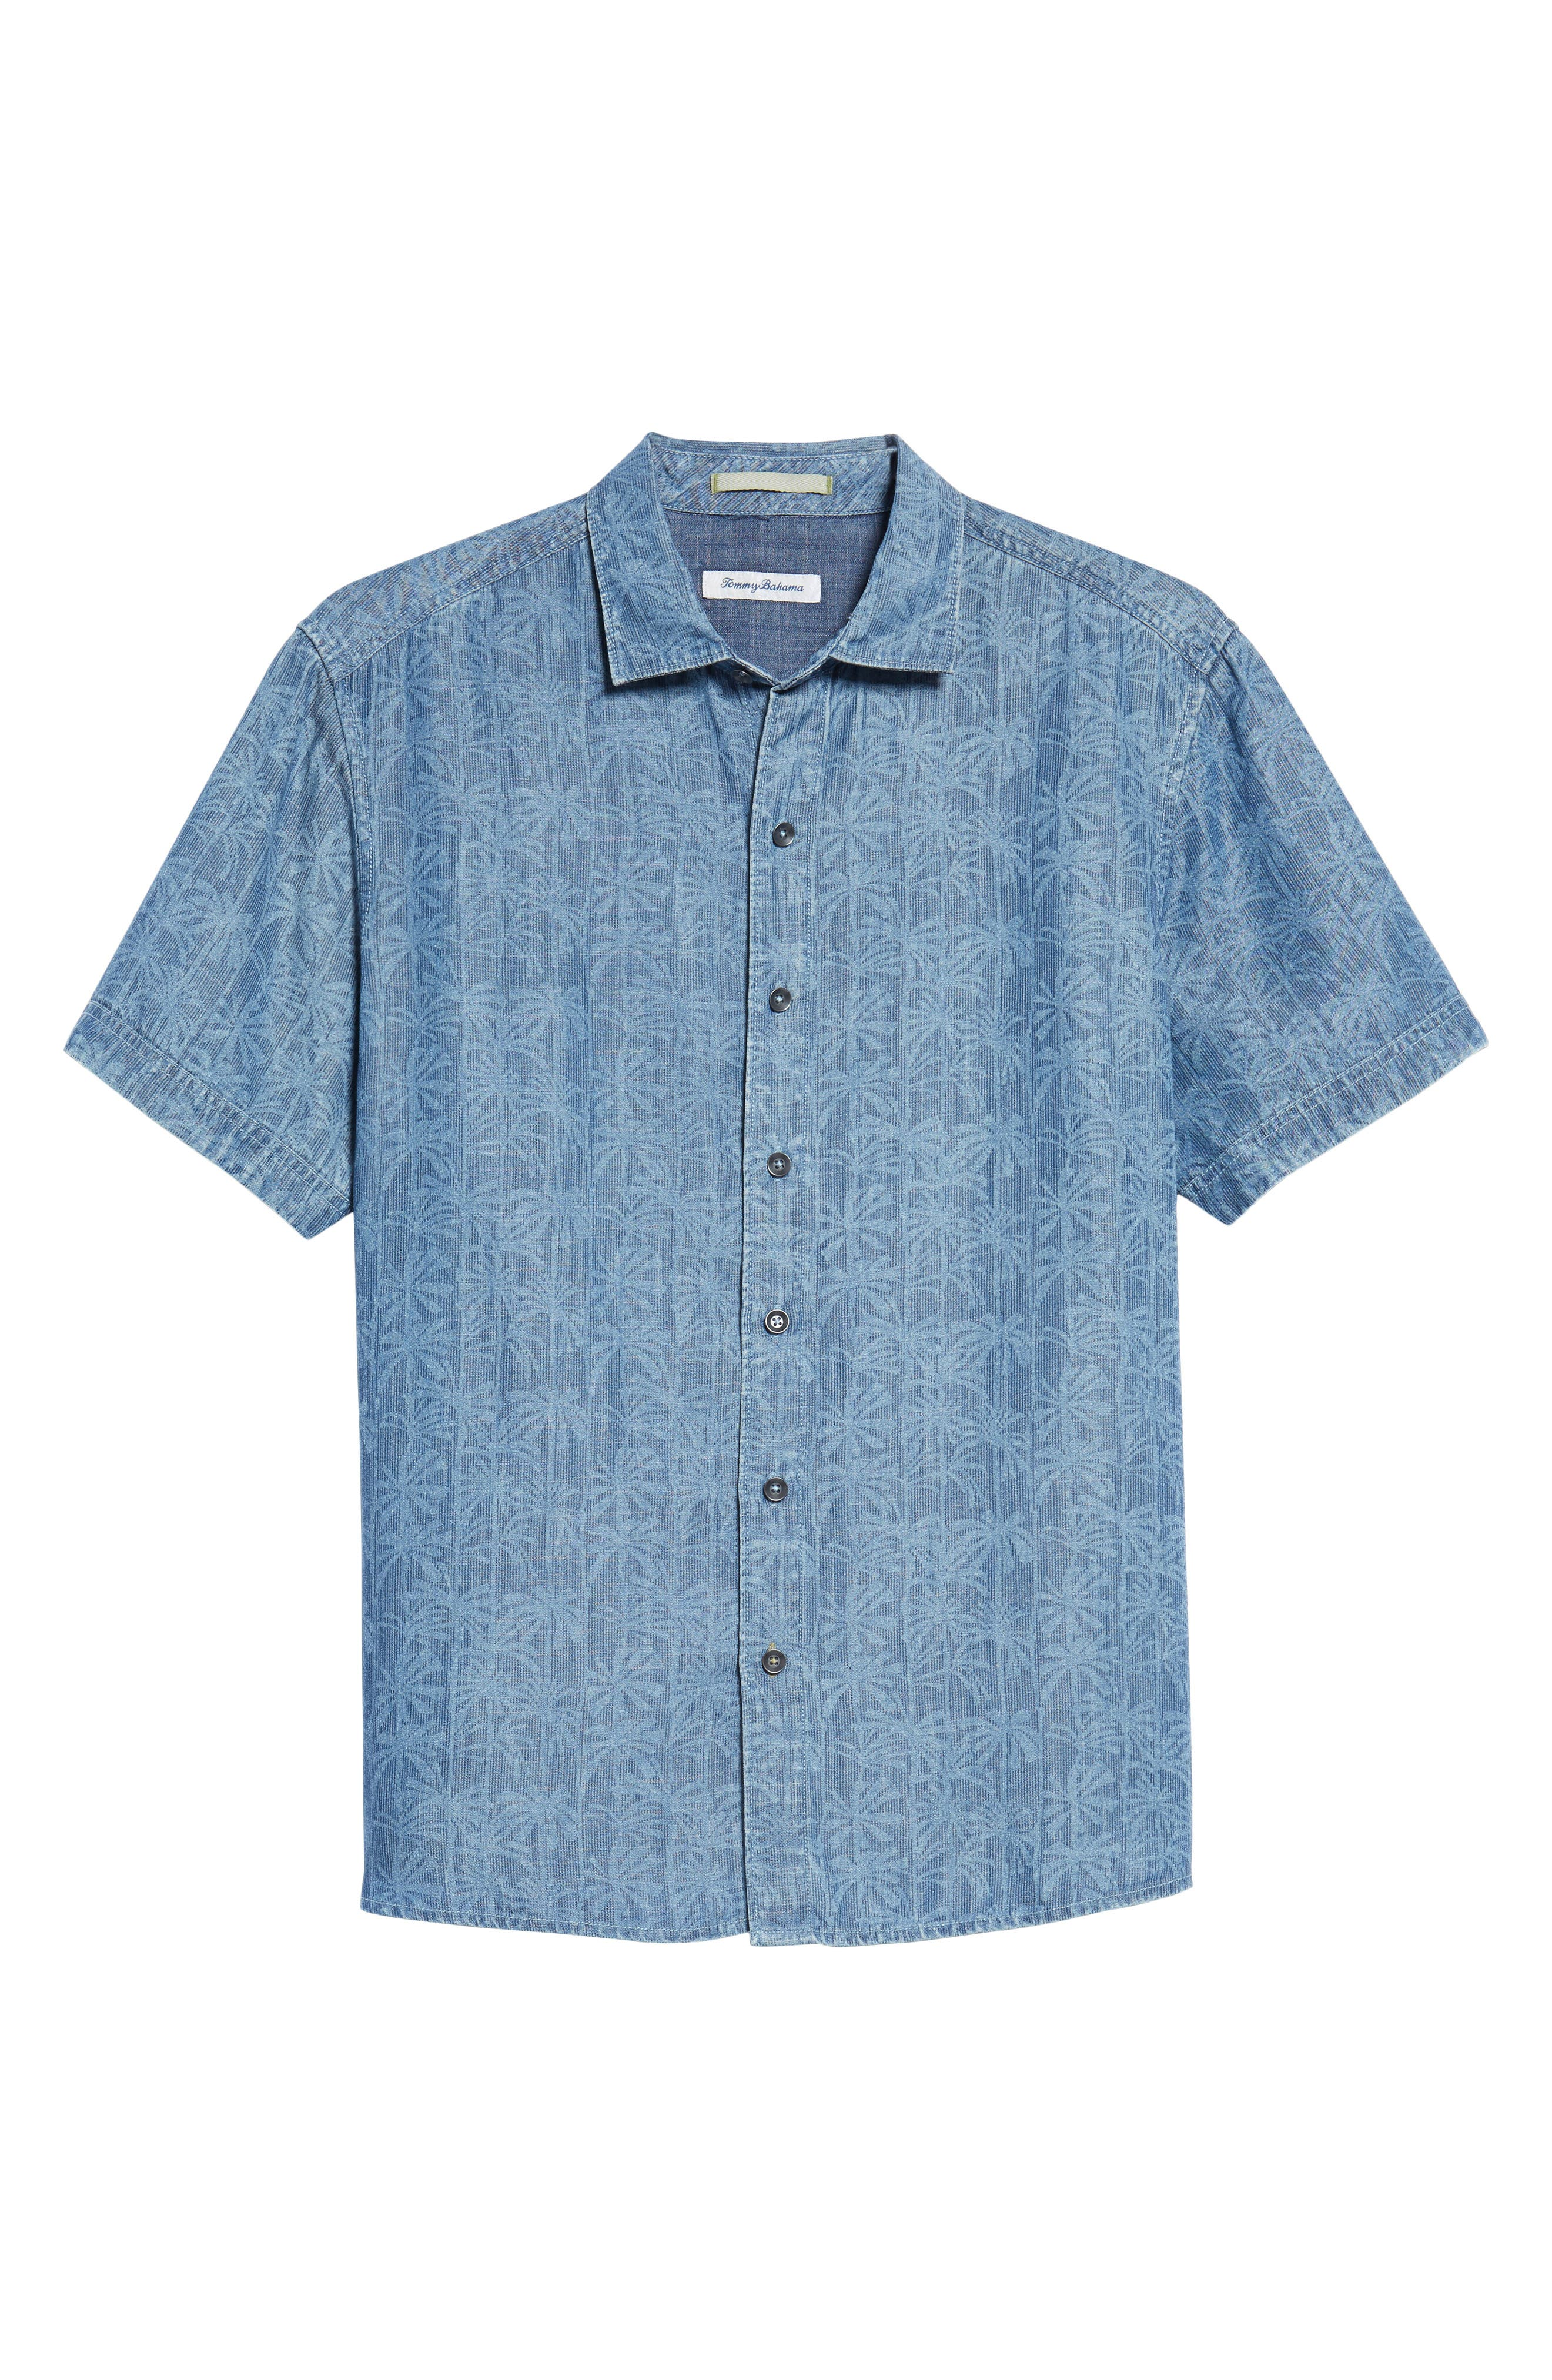 Block Party Palms Chambray Sport Shirt,                             Alternate thumbnail 6, color,                             400